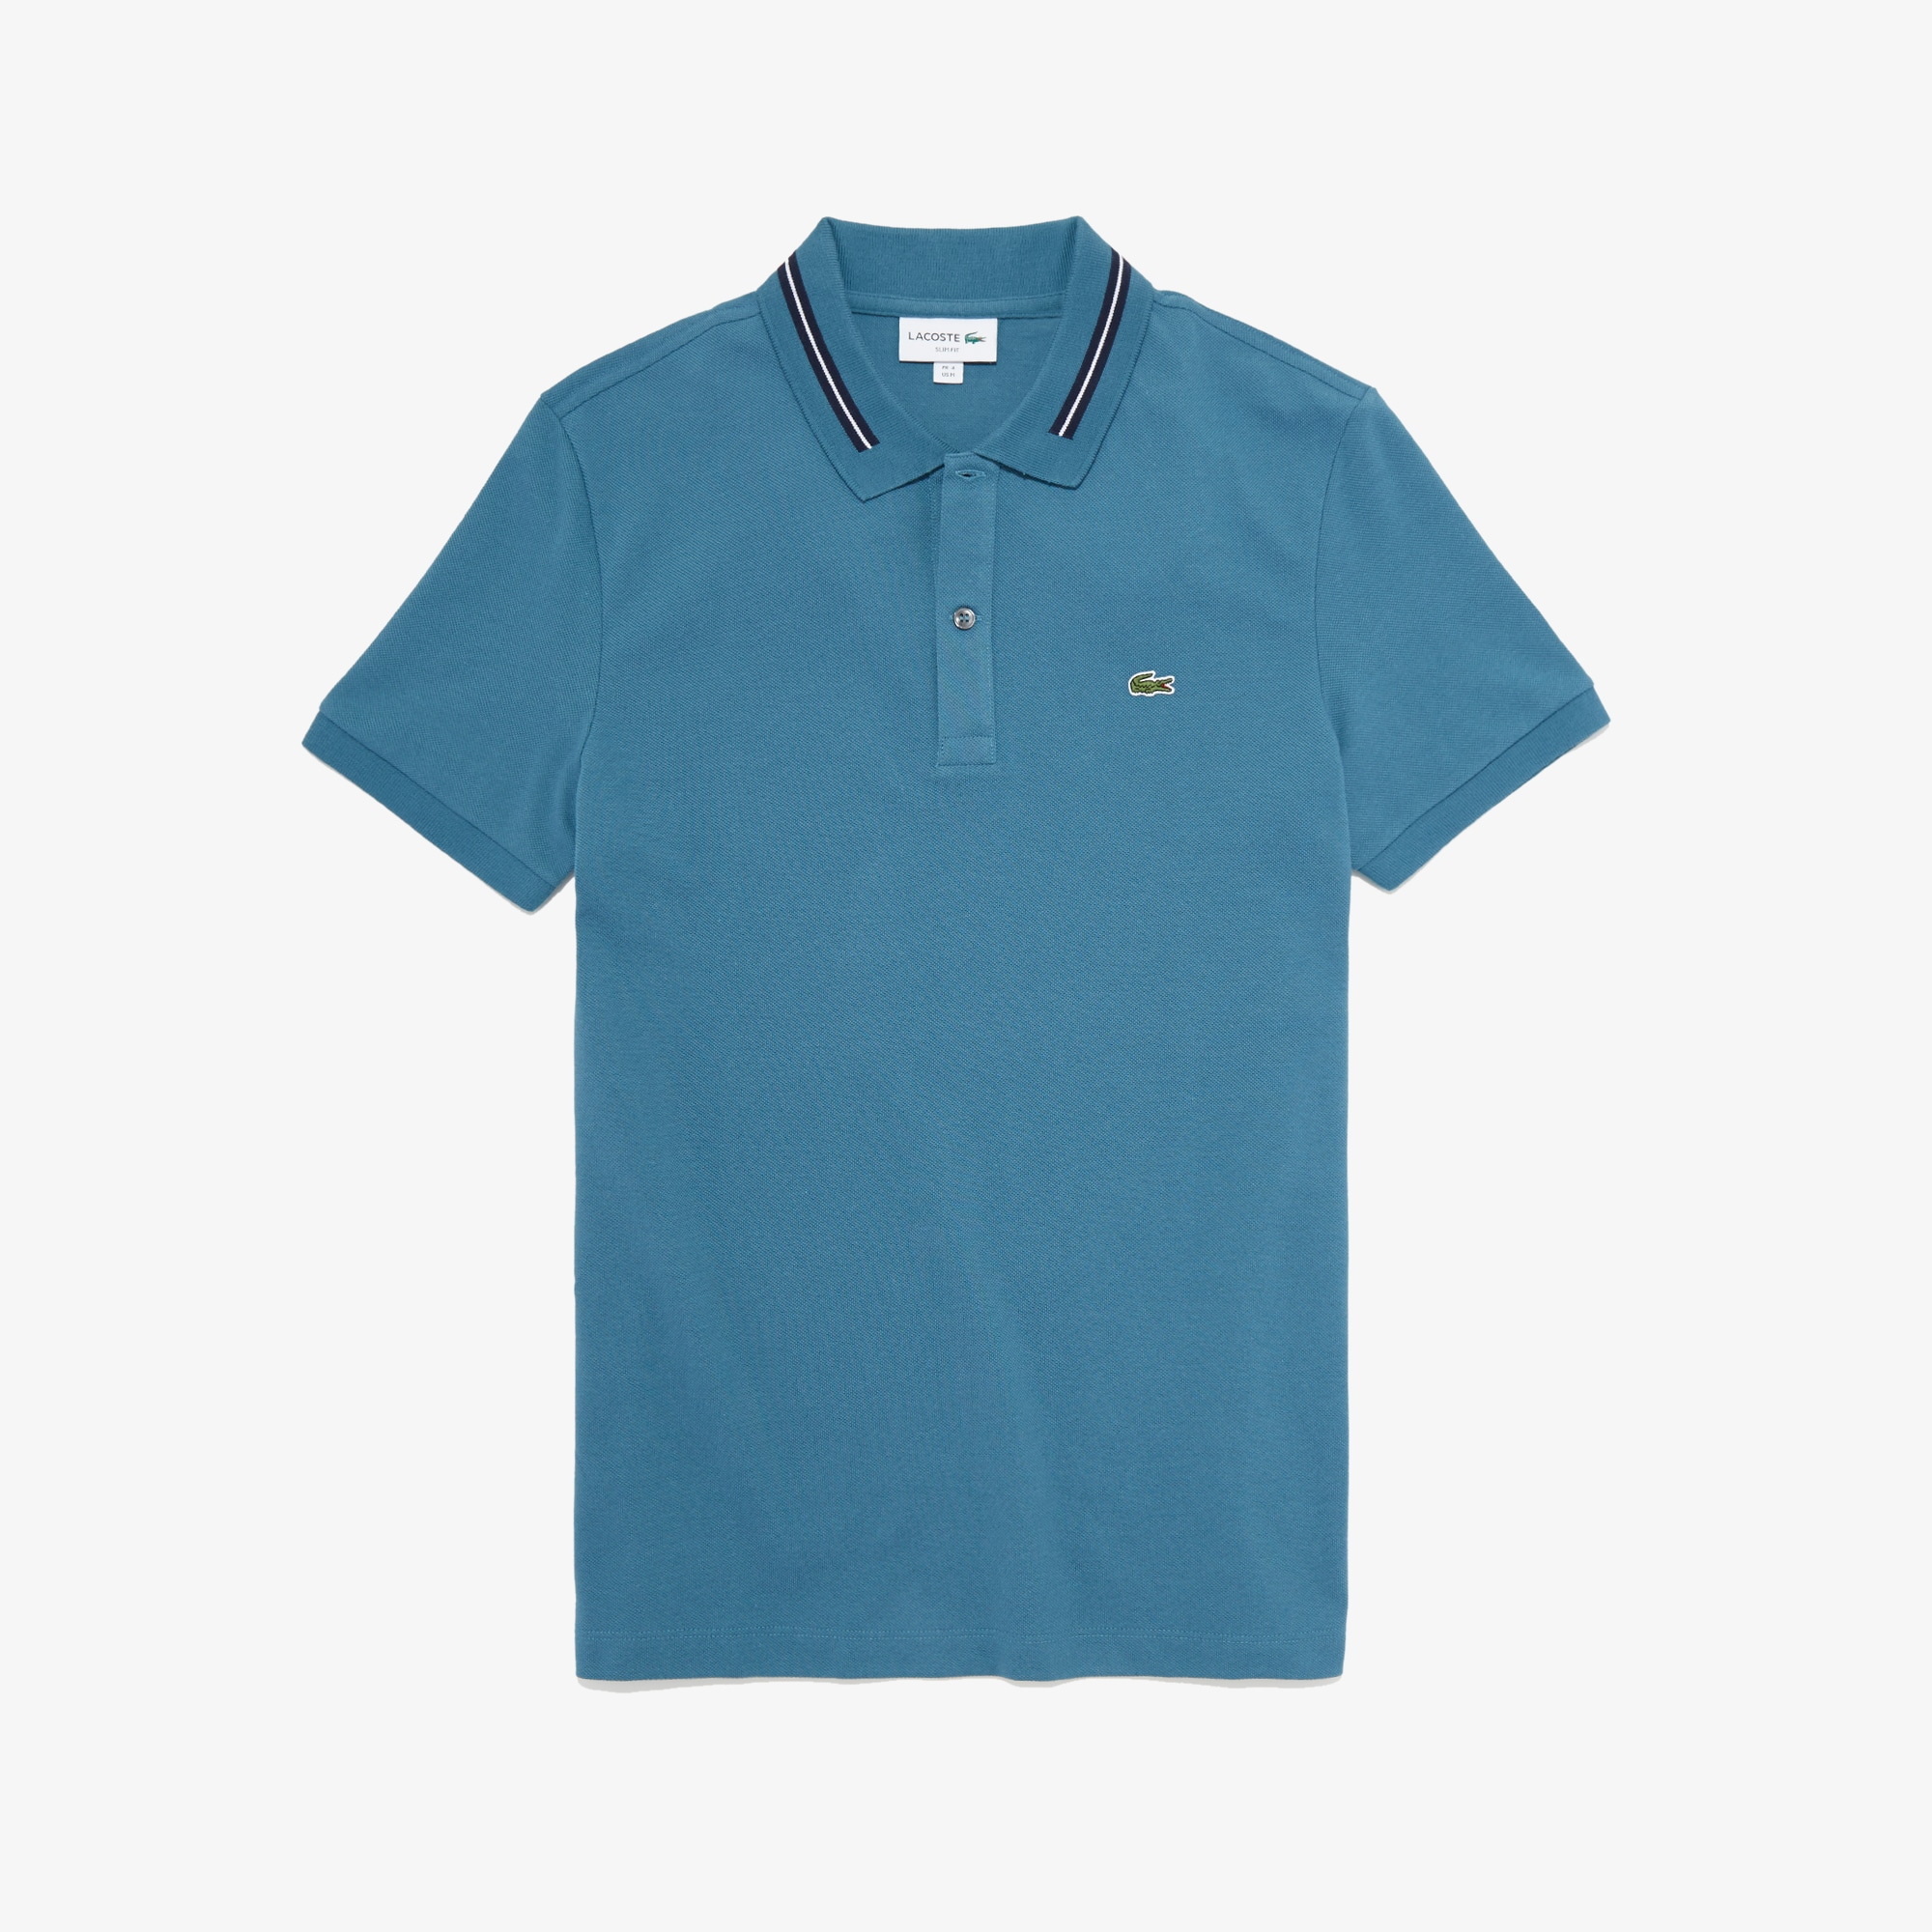 Men's Slim Fit Stripe-Accented Cotton Piqué Polo